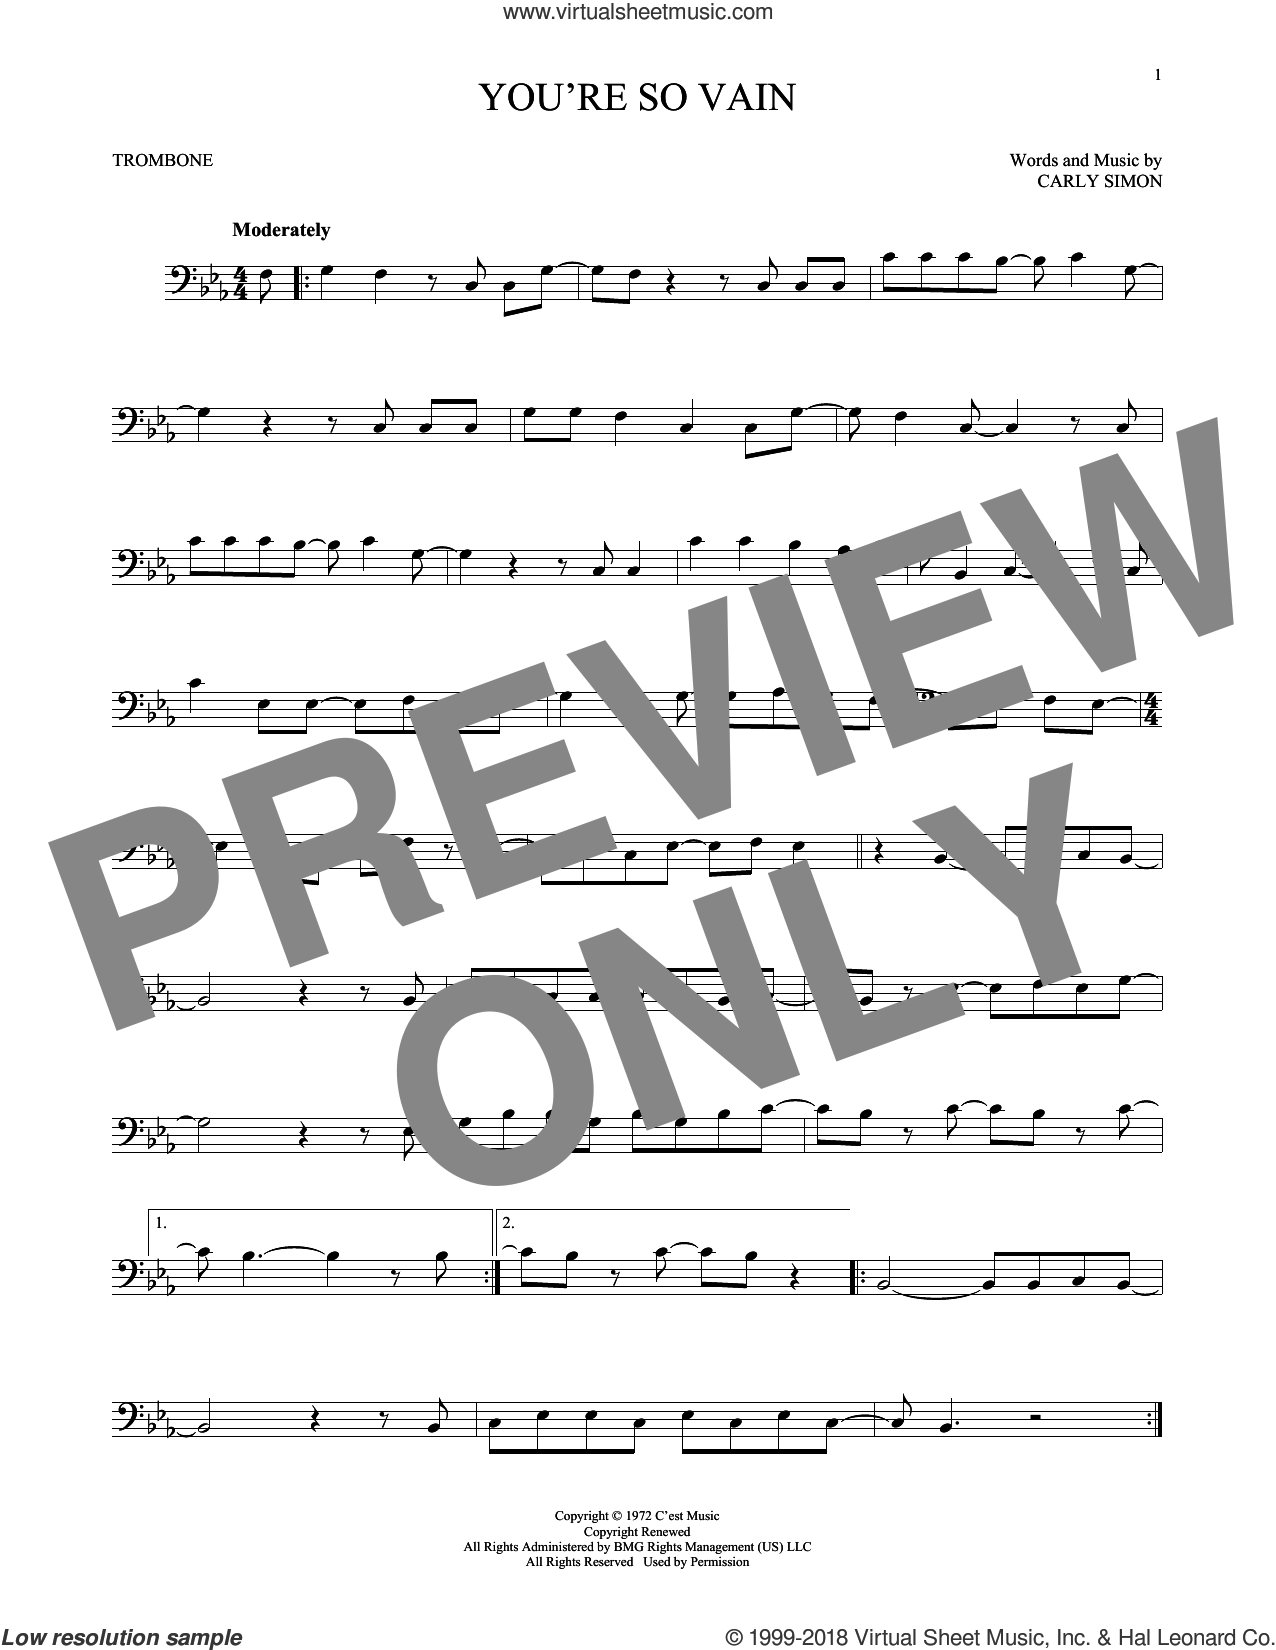 You're So Vain sheet music for trombone solo by Carly Simon, intermediate. Score Image Preview.